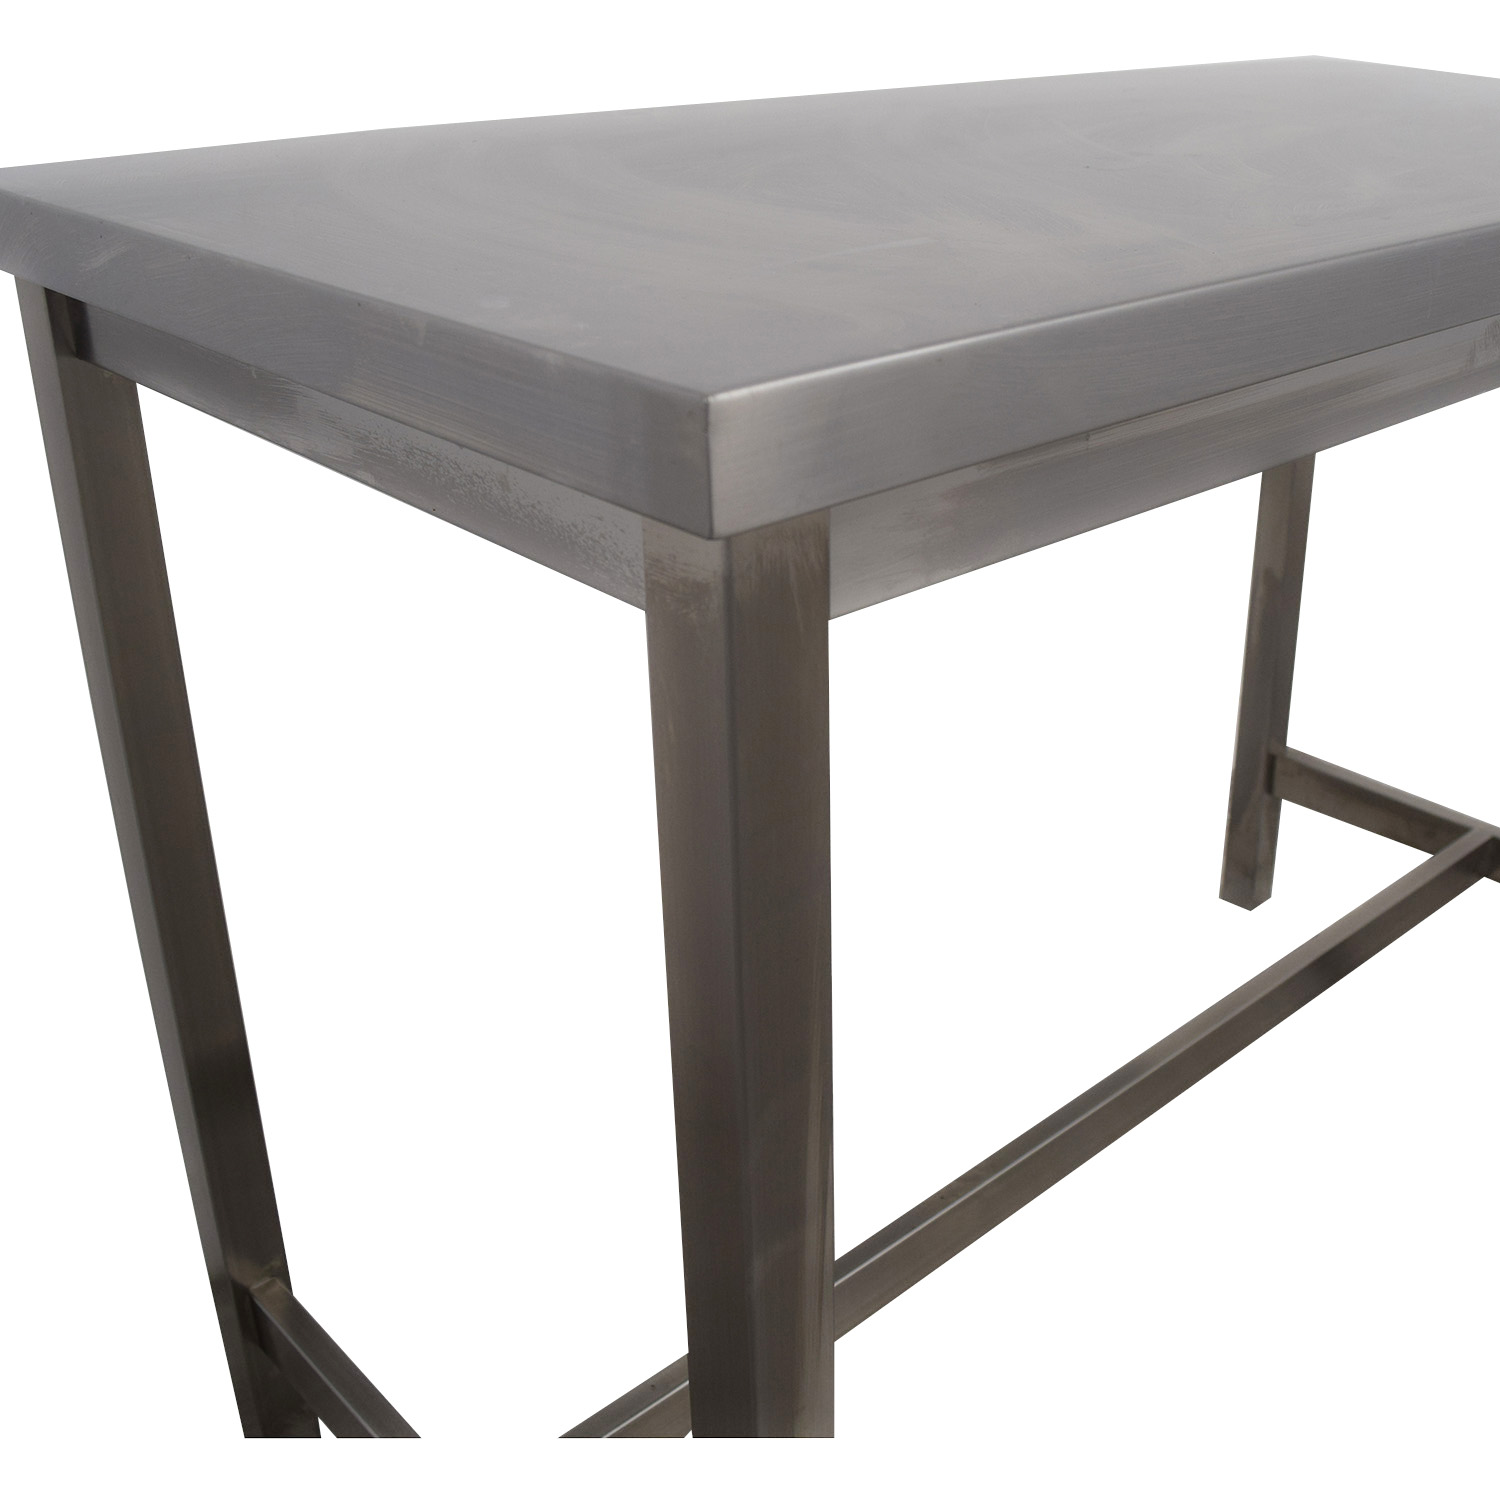 Stainless Steel Chrome Table coupon